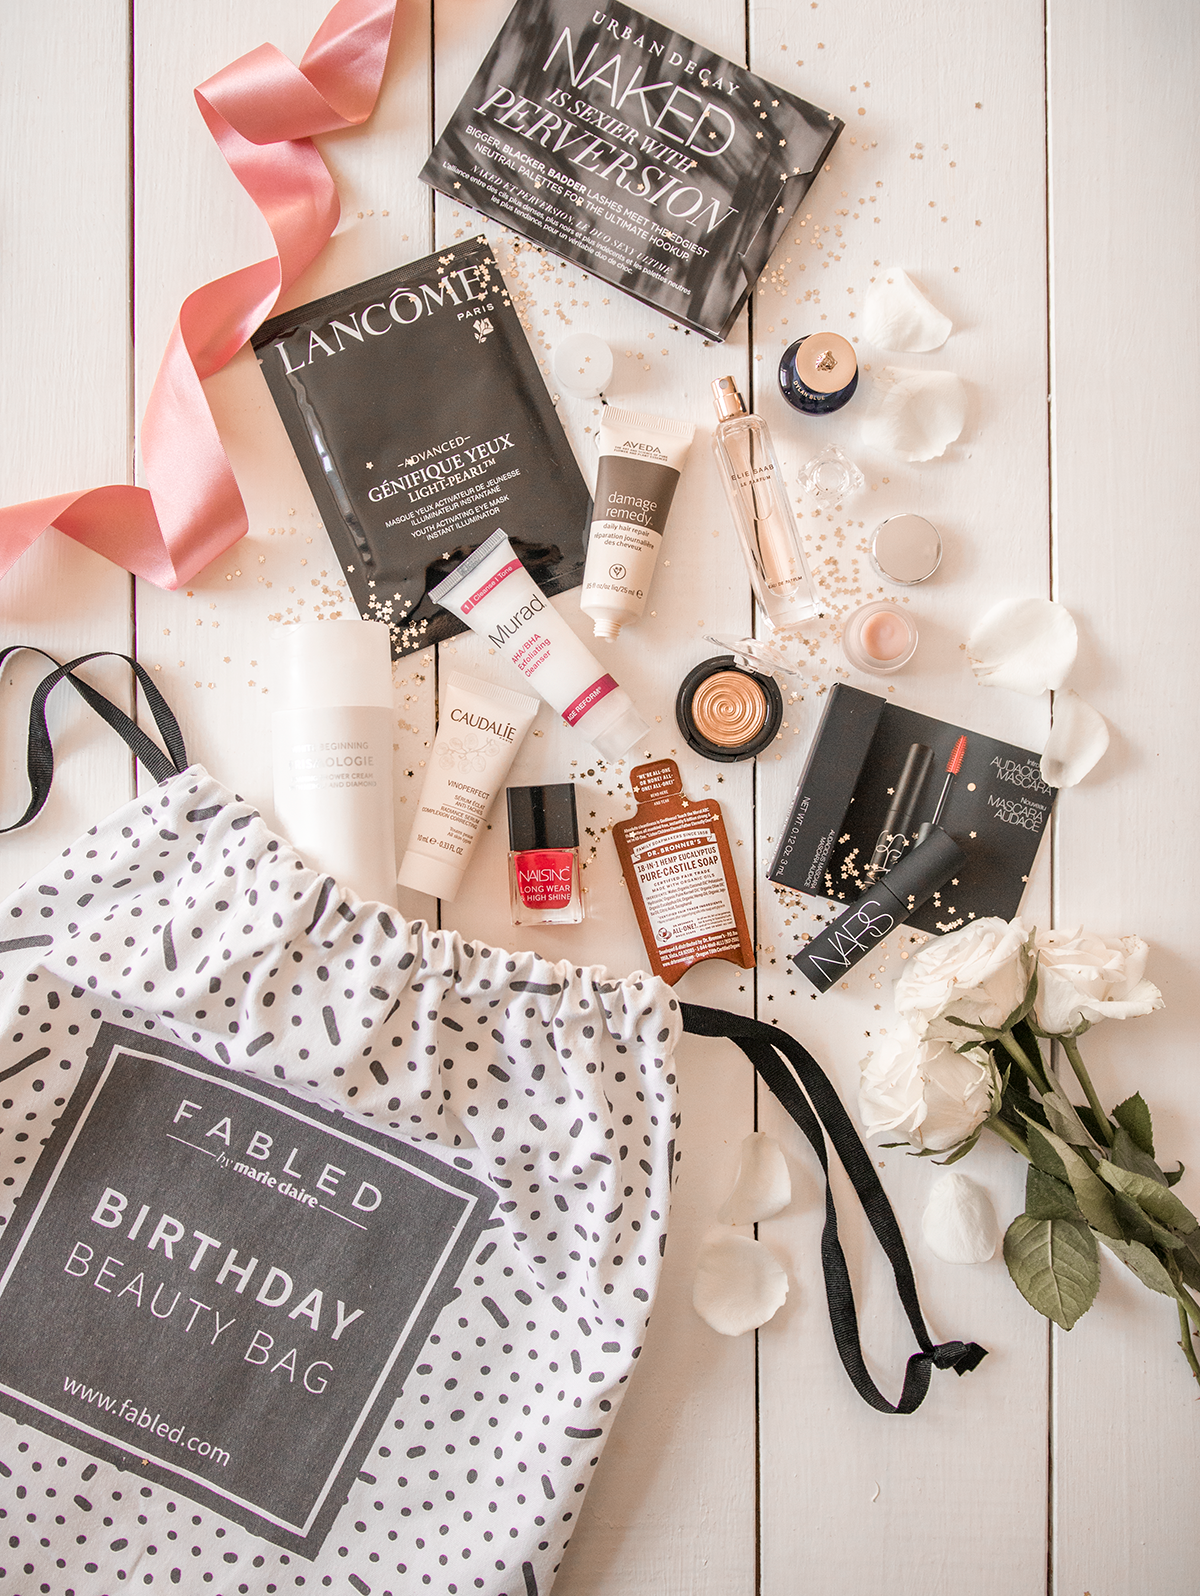 Fabled Exclusive Birthday Bag